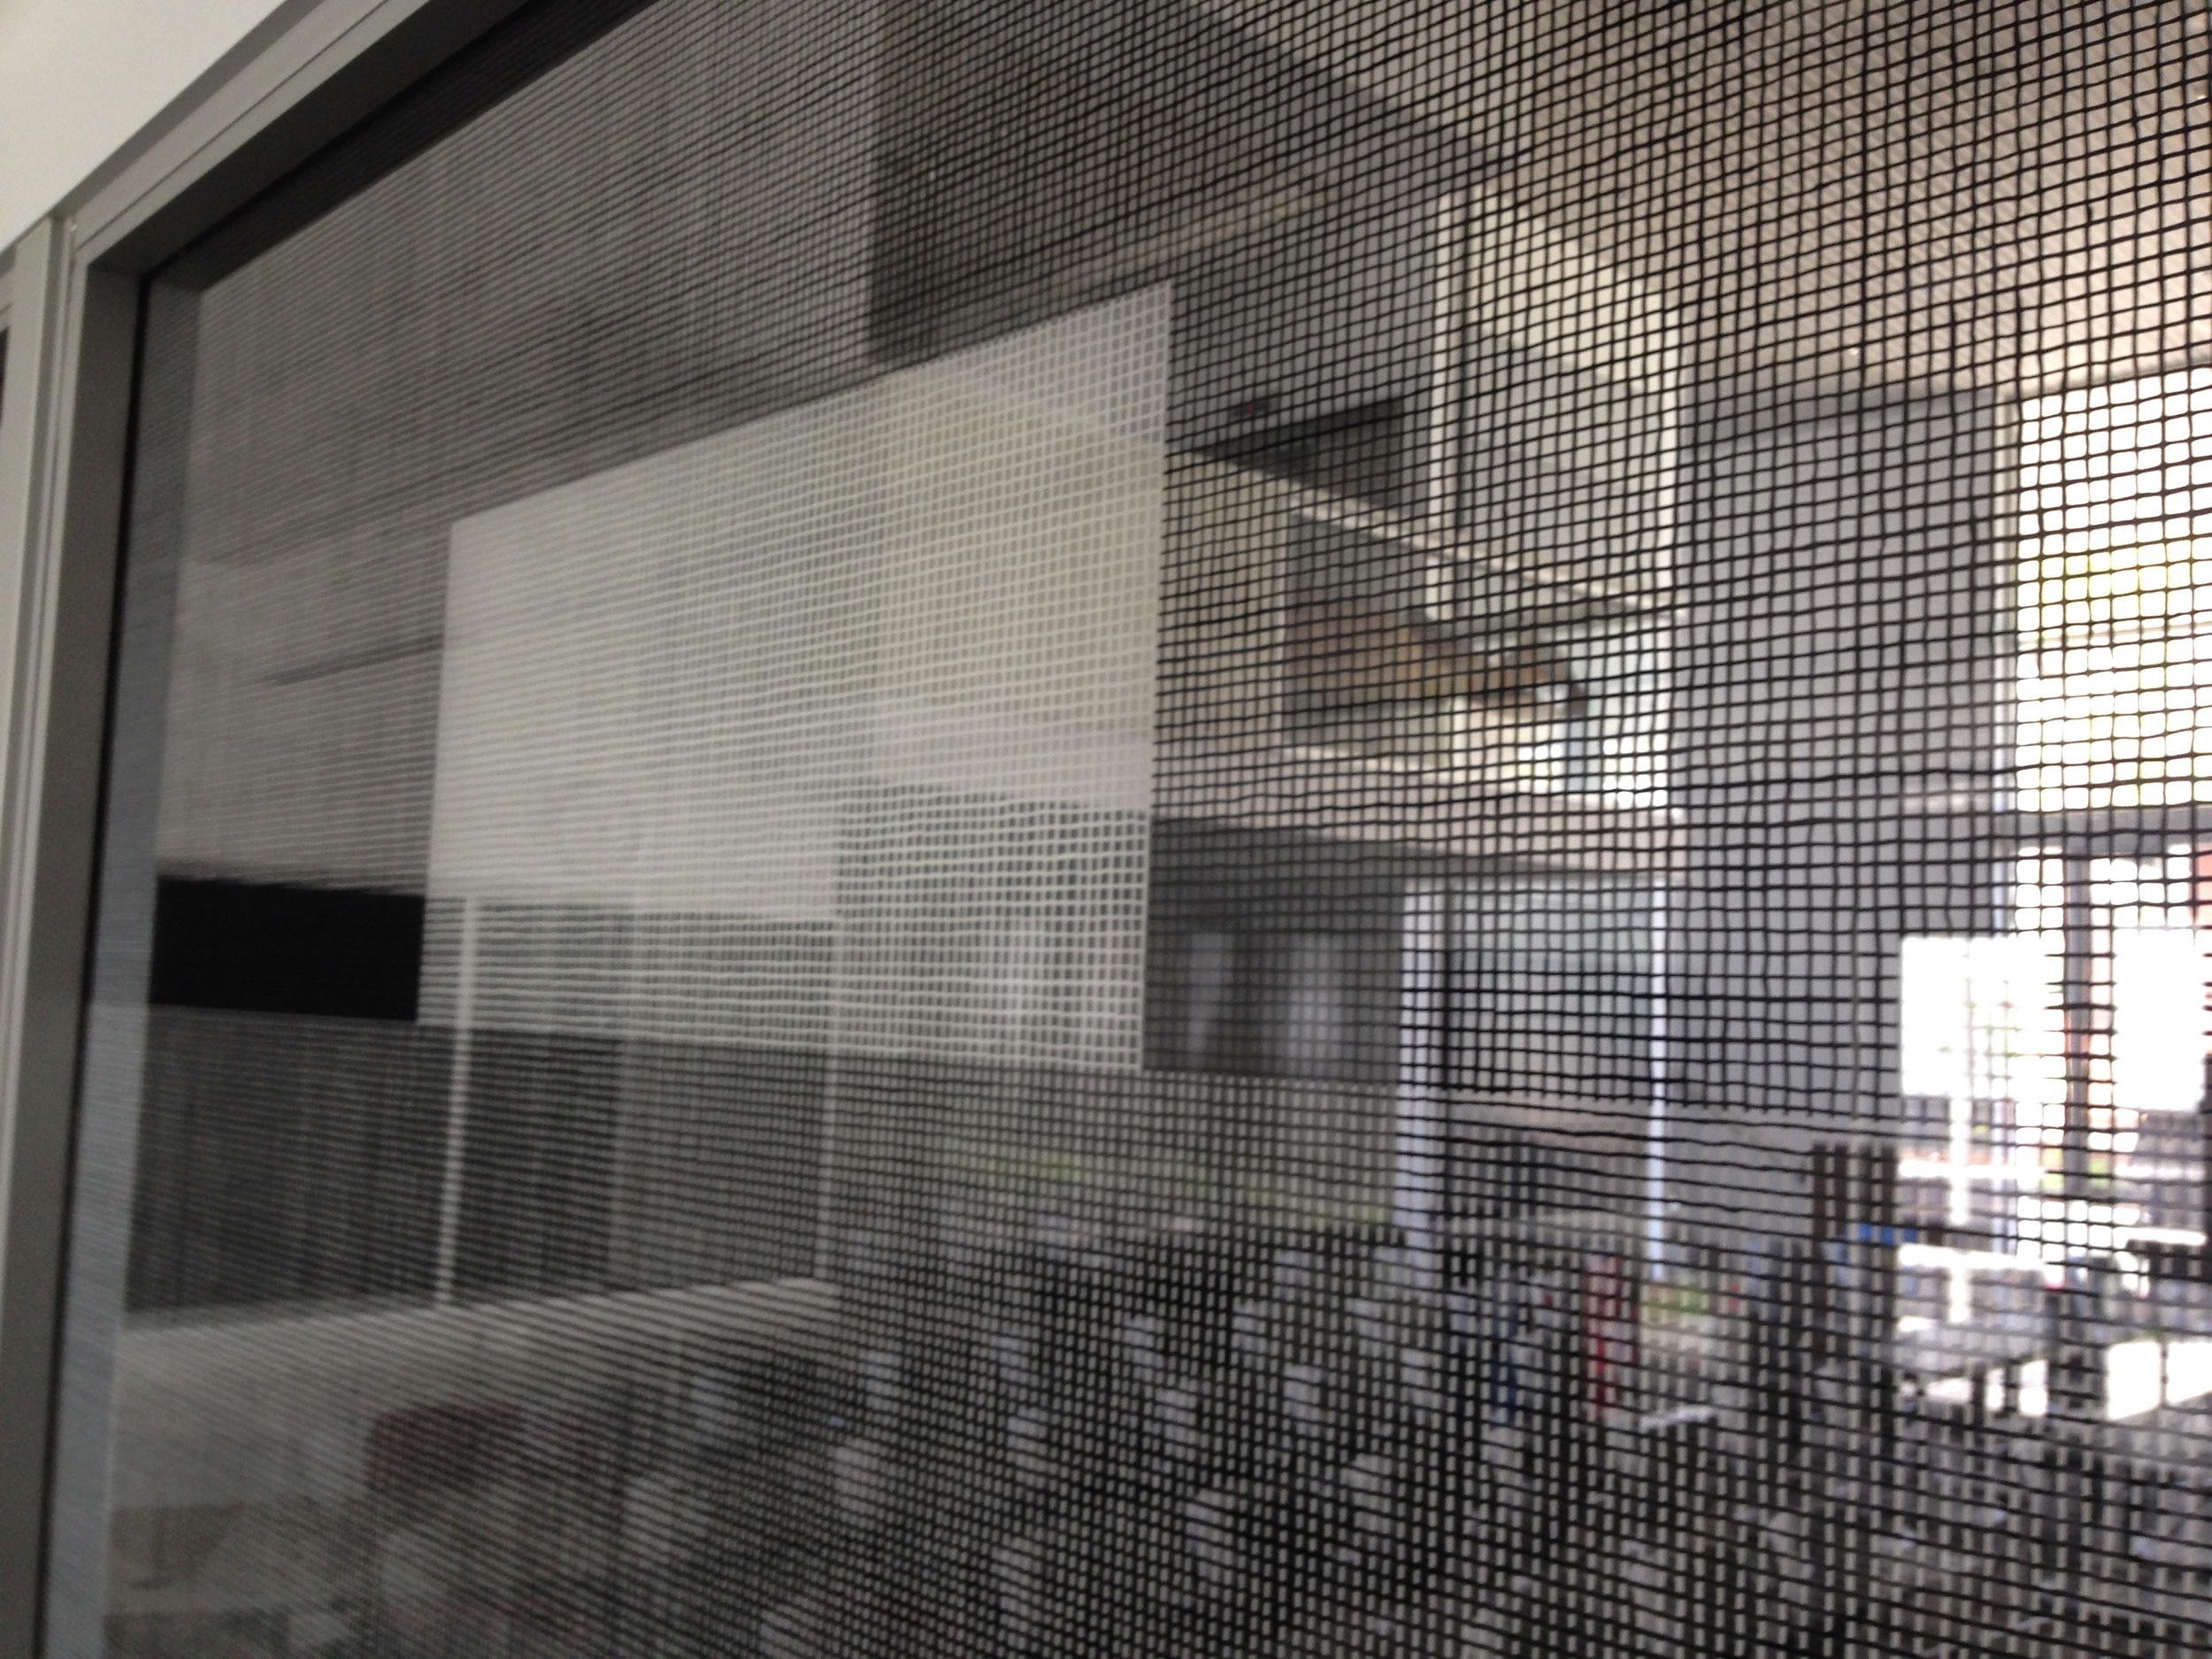 Eveline Kotai - Interior Window at Wanneroo High School - Cooling Bros, architects: Darryl Way and Associates